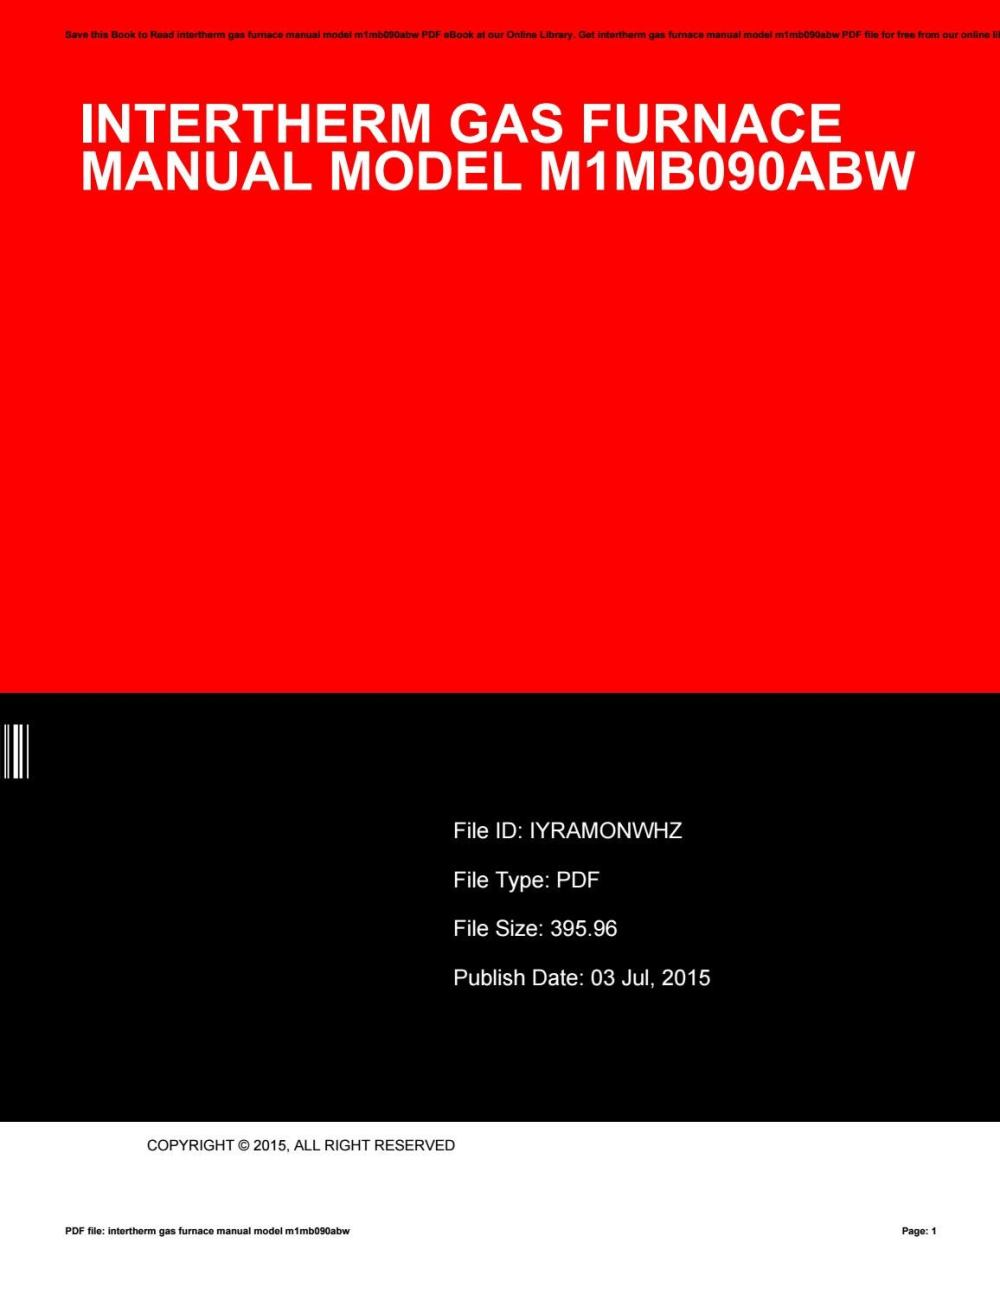 medium resolution of intertherm gas furnace manual model m1mb090abw by juanitanakamura3275 issuu